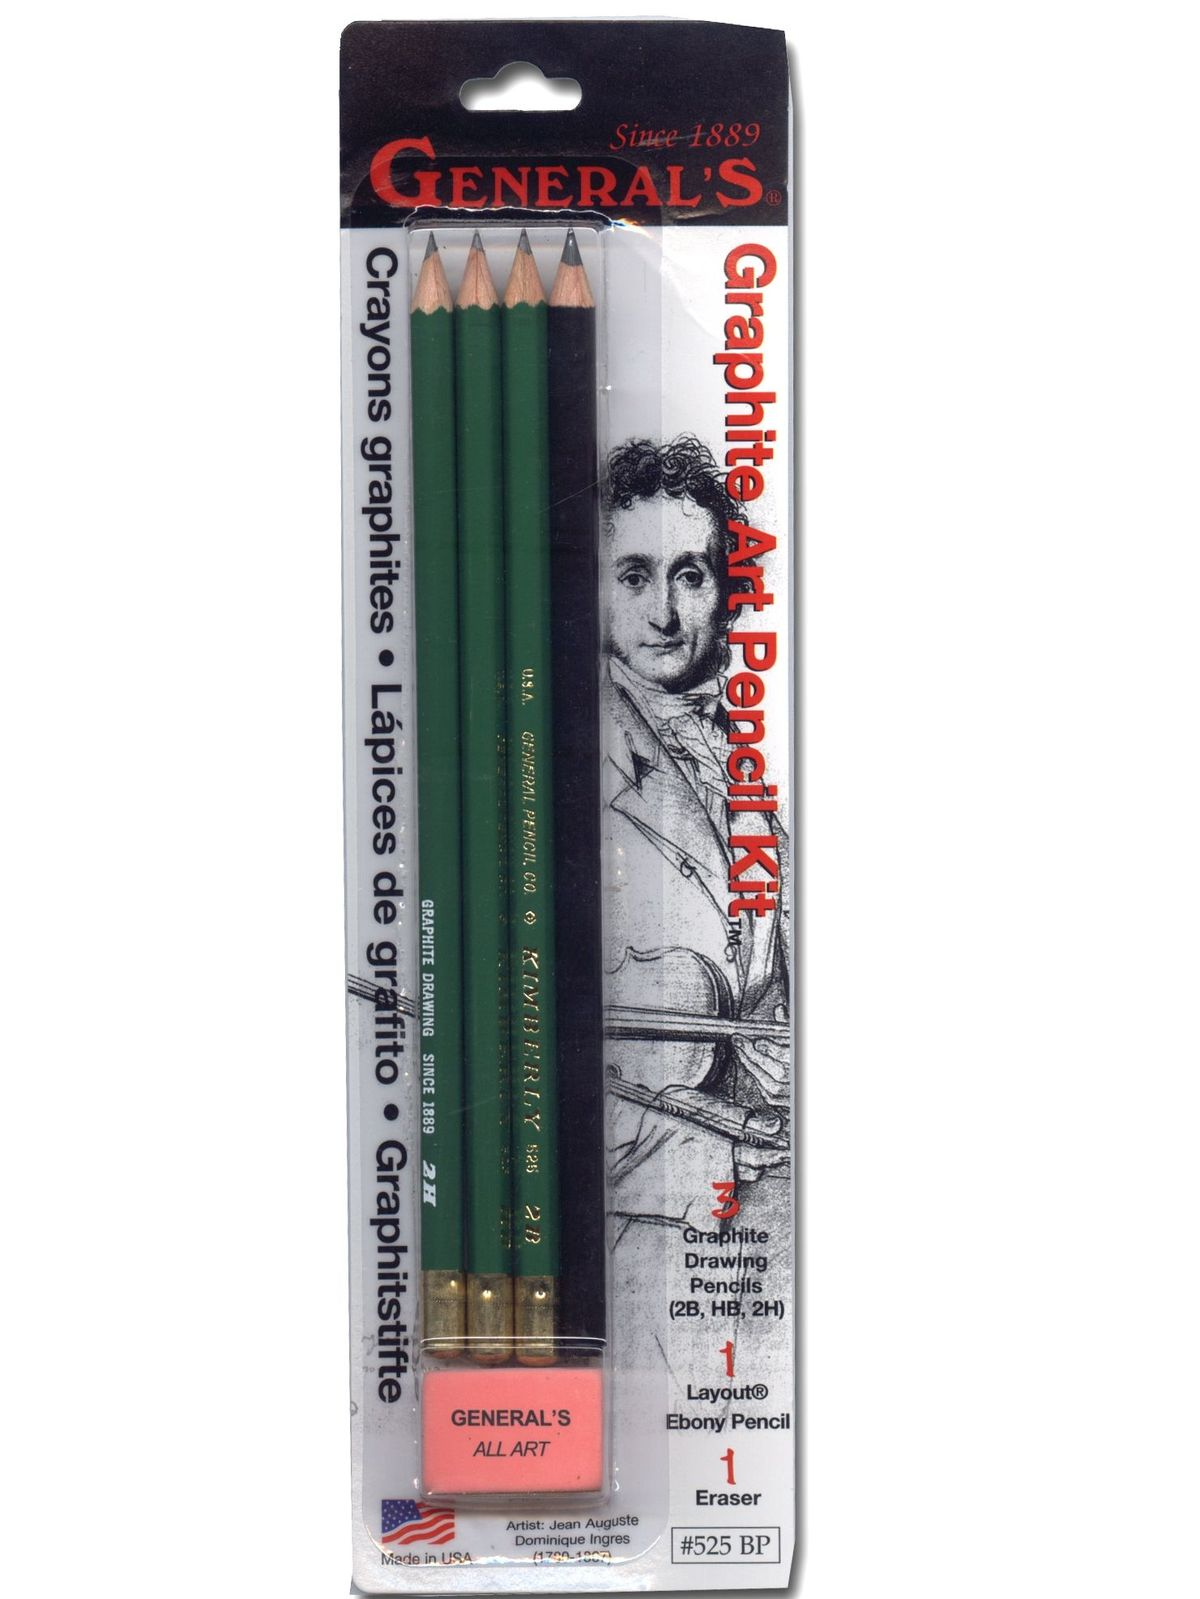 Graphite Art Pencil Kit